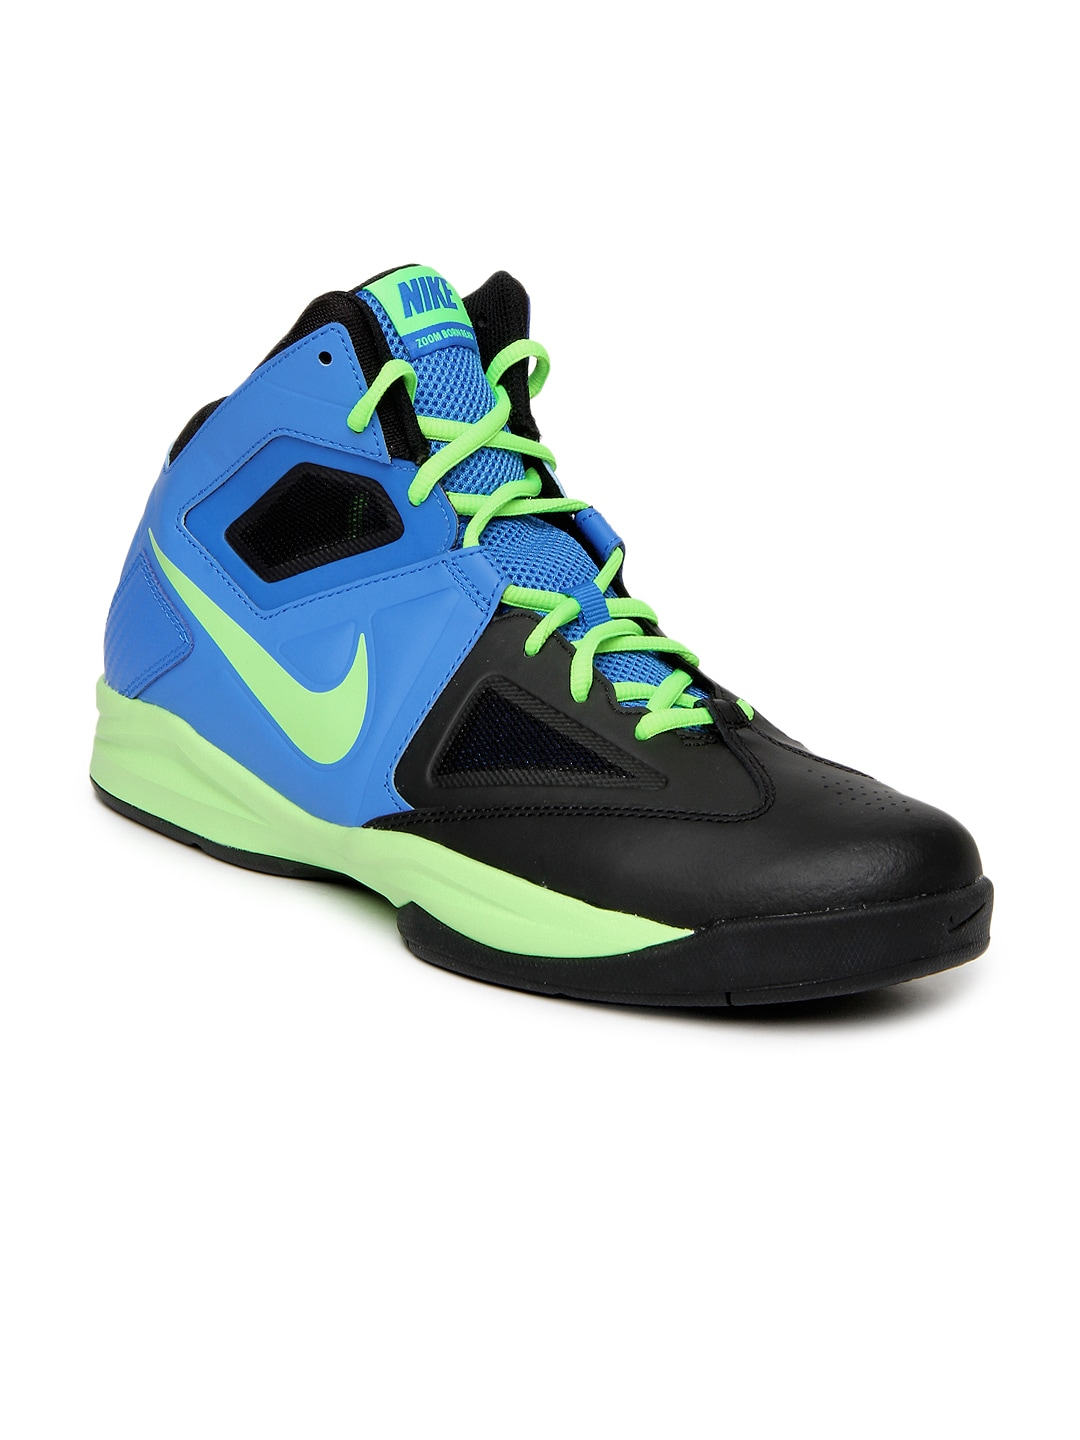 Sports shoes online shopping offers